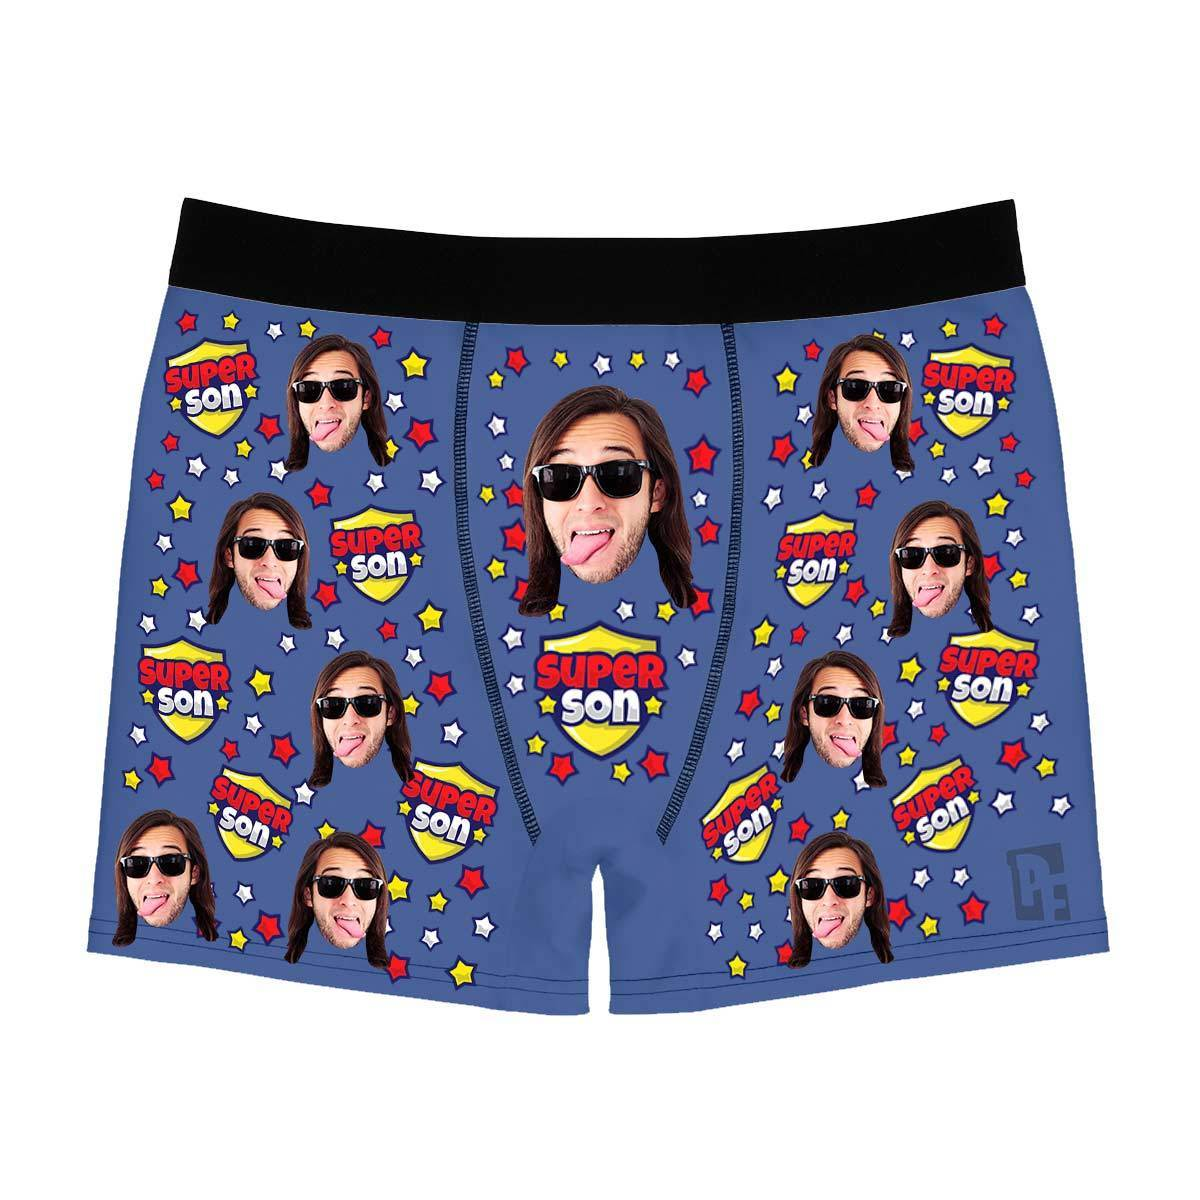 Darkblue Super son men's boxer briefs personalized with photo printed on them